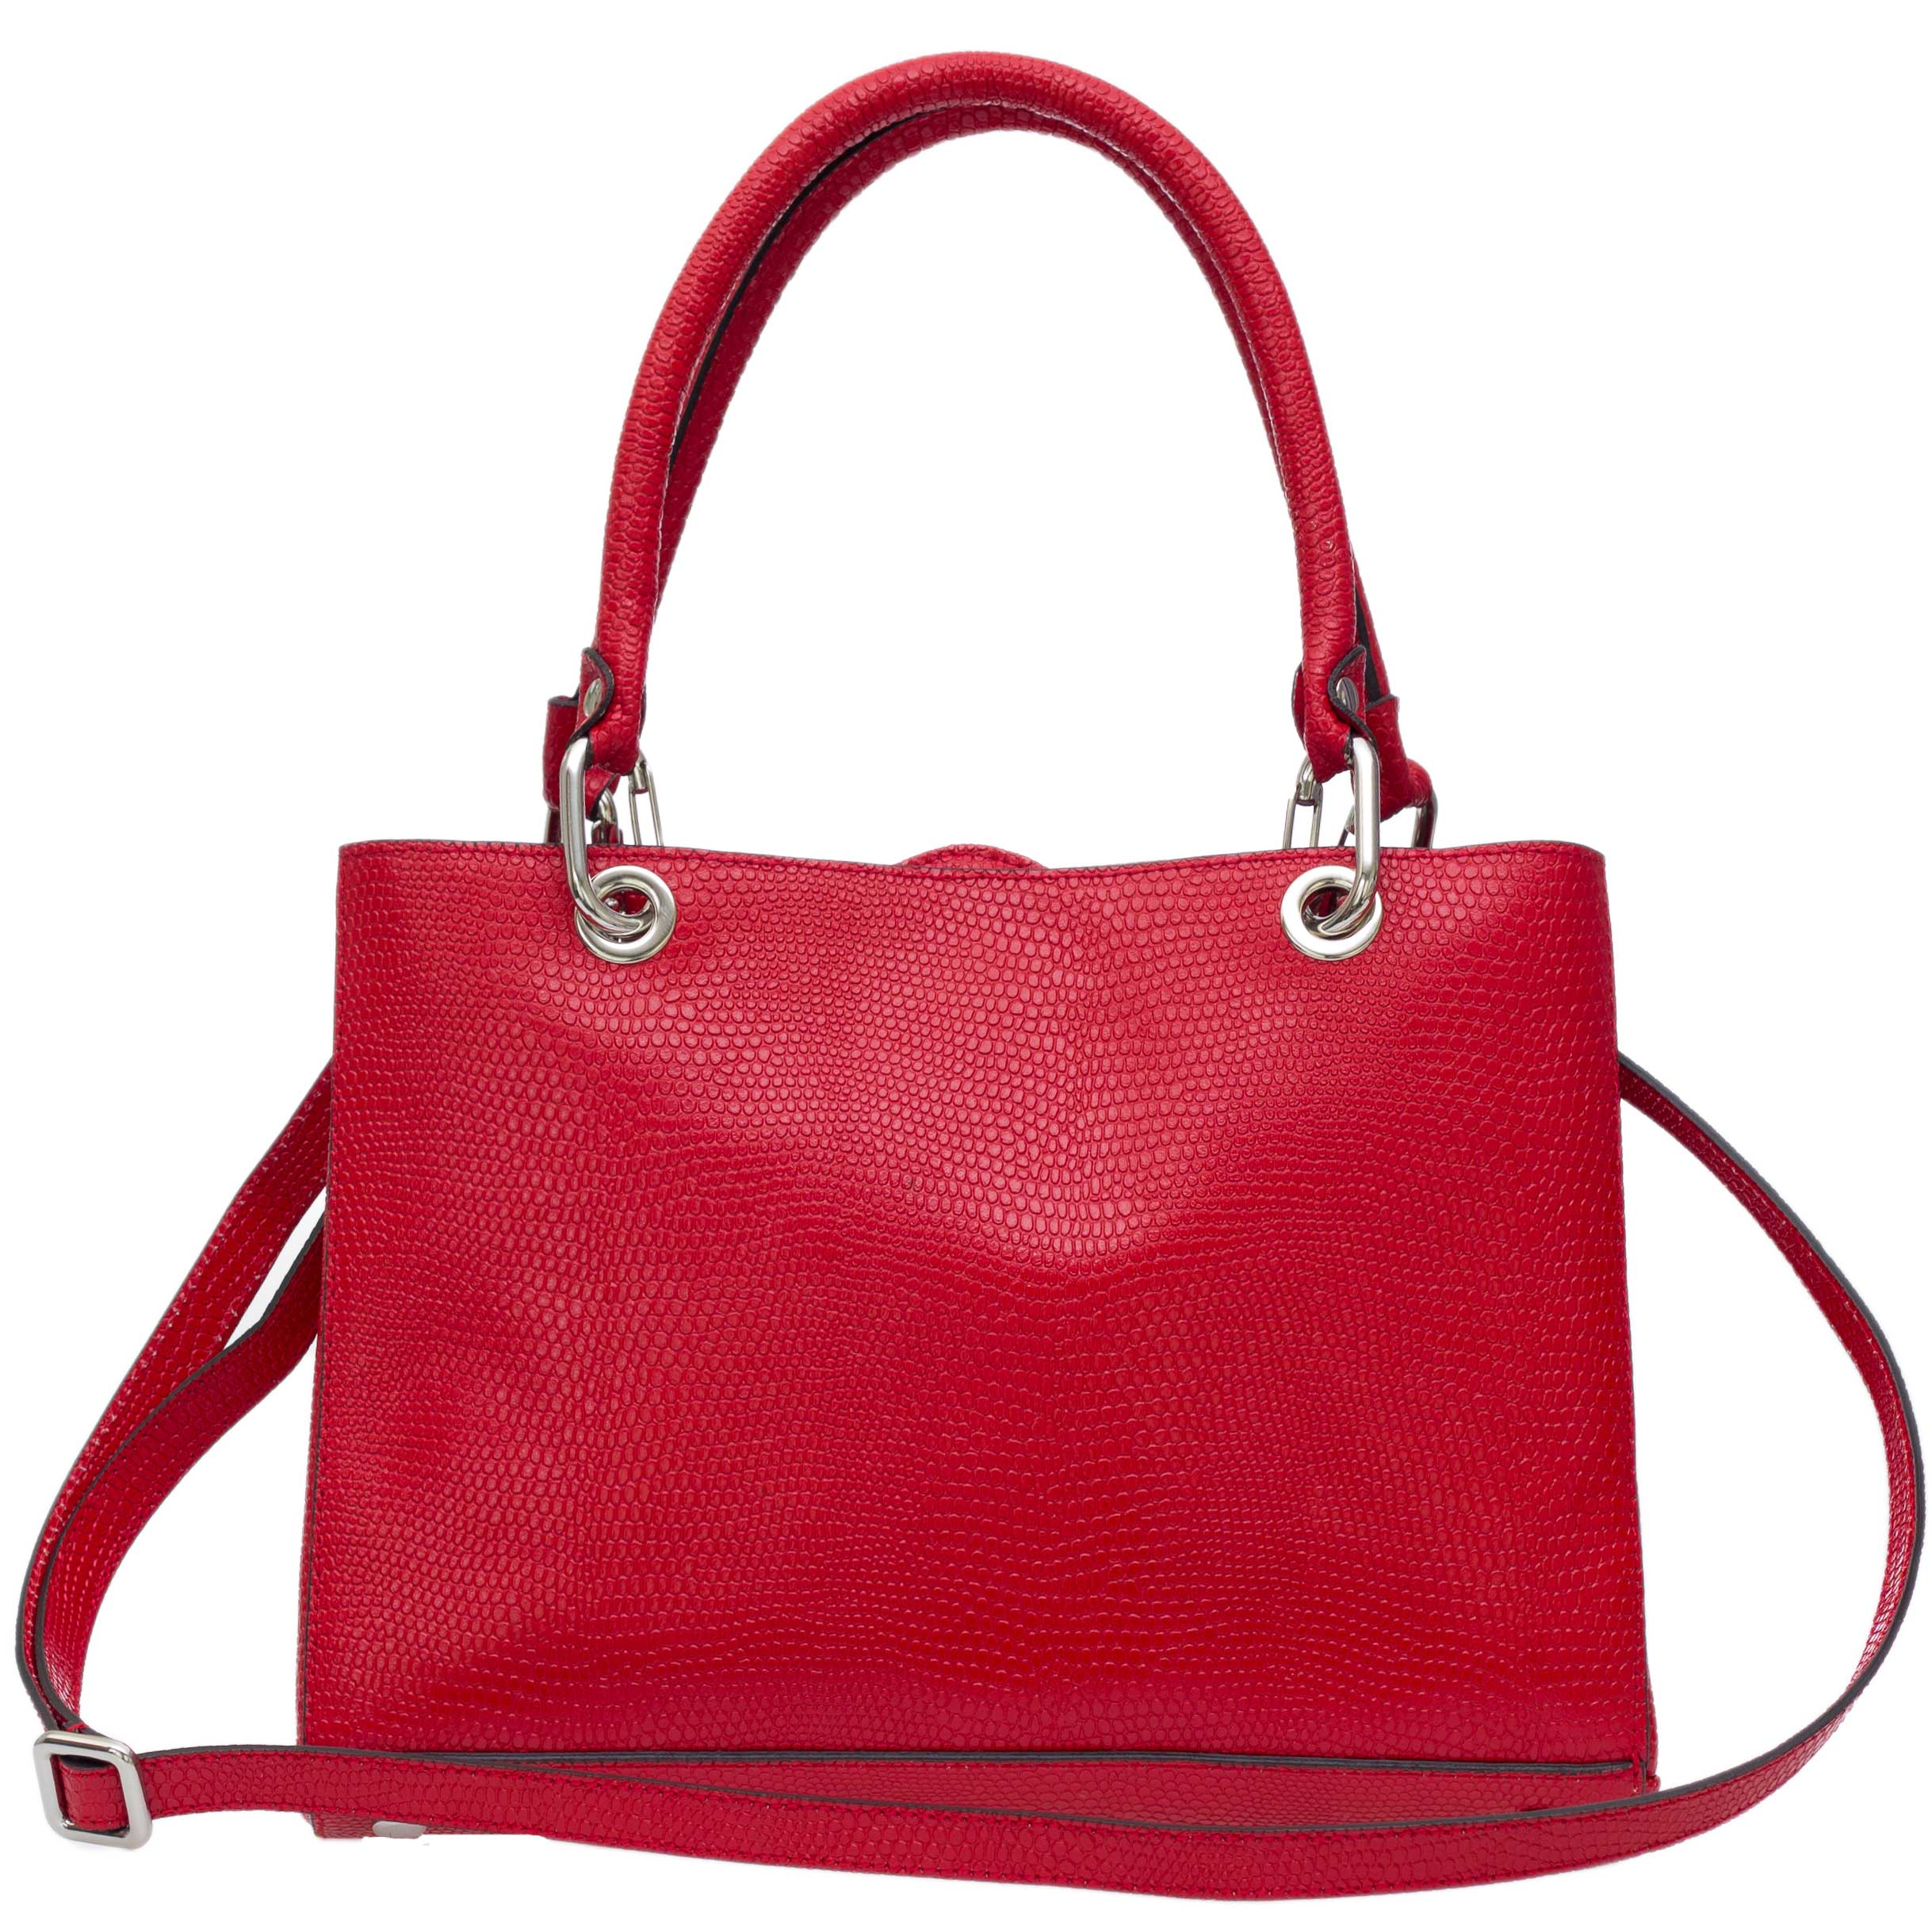 Plinio Visona Italian made red embossed leather small tote bag